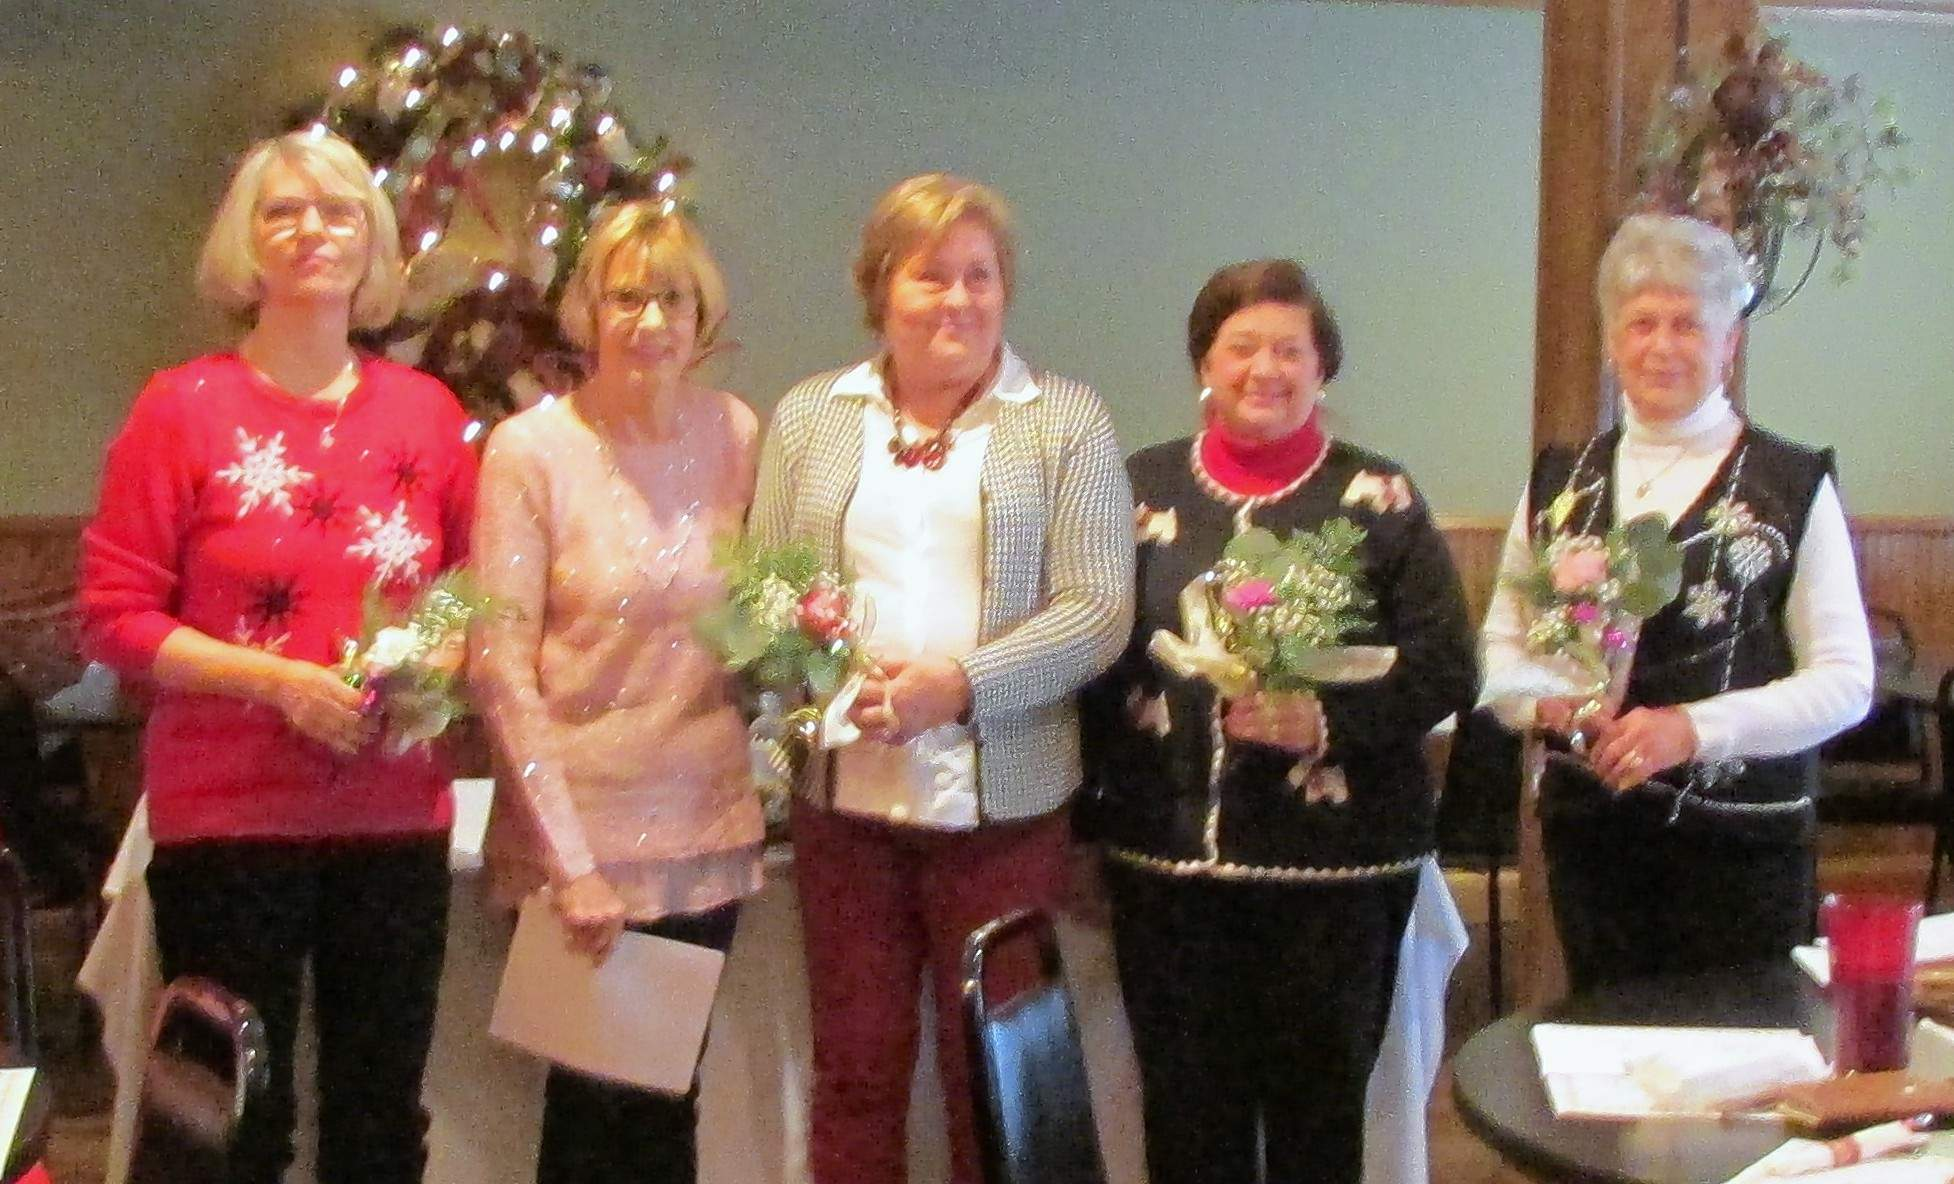 Liz Garrett installs 2018 officers at the final meeting of the Eldorado Garden Study Club on Dec. 7 at The Red Onion restaurant in Equality. From left, are Dana Keating, secretary; Liz Garrett, past president; Jan Cleveland, president; Marilyn Ellis, vice president; and Dixie Long, treasurer. Regular club meetings begin again in March.